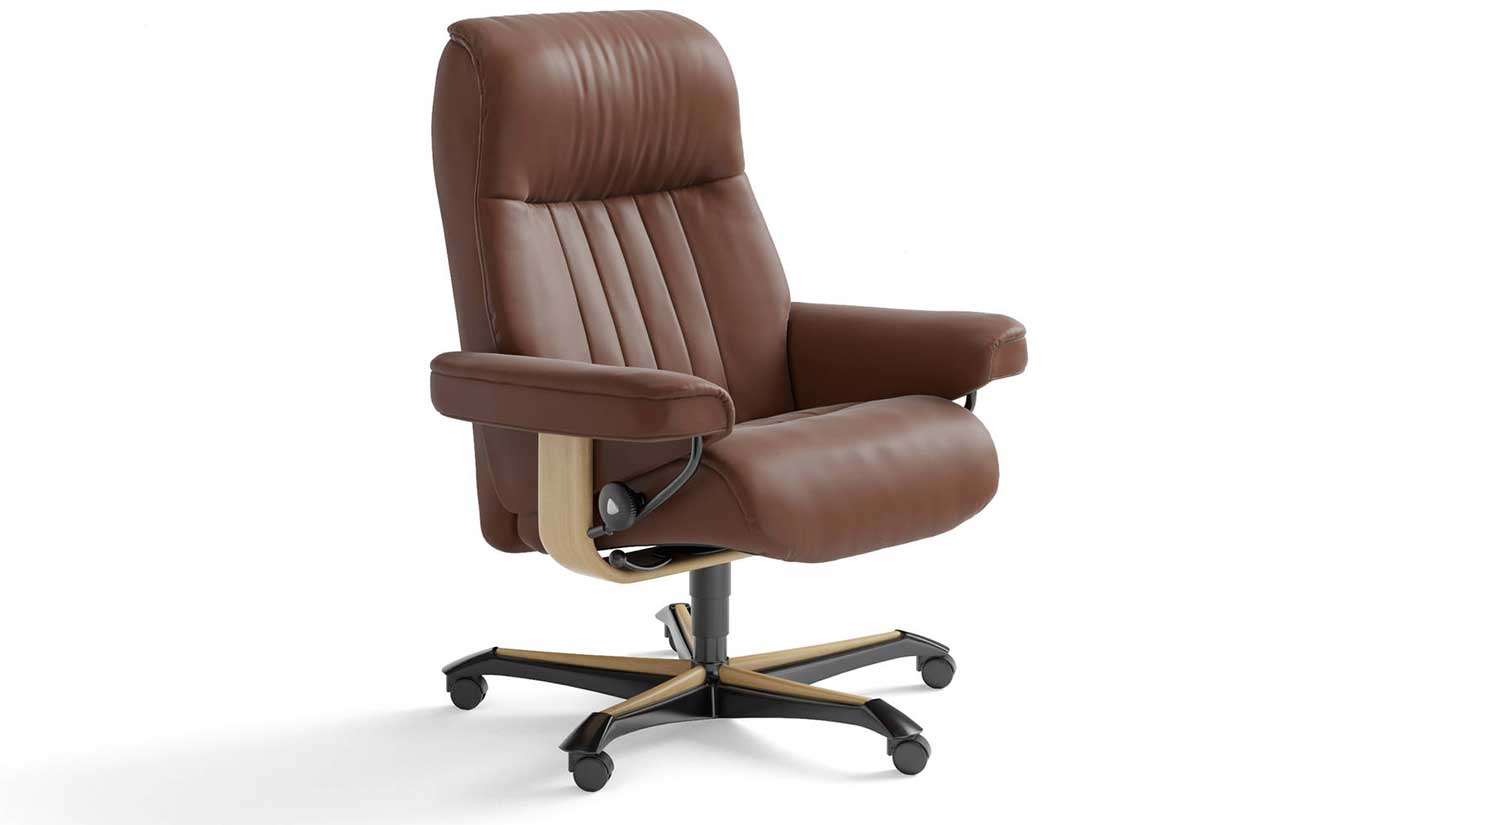 Stressless Office Chair Circle Furniture Crown Stressless Office Chair Desk